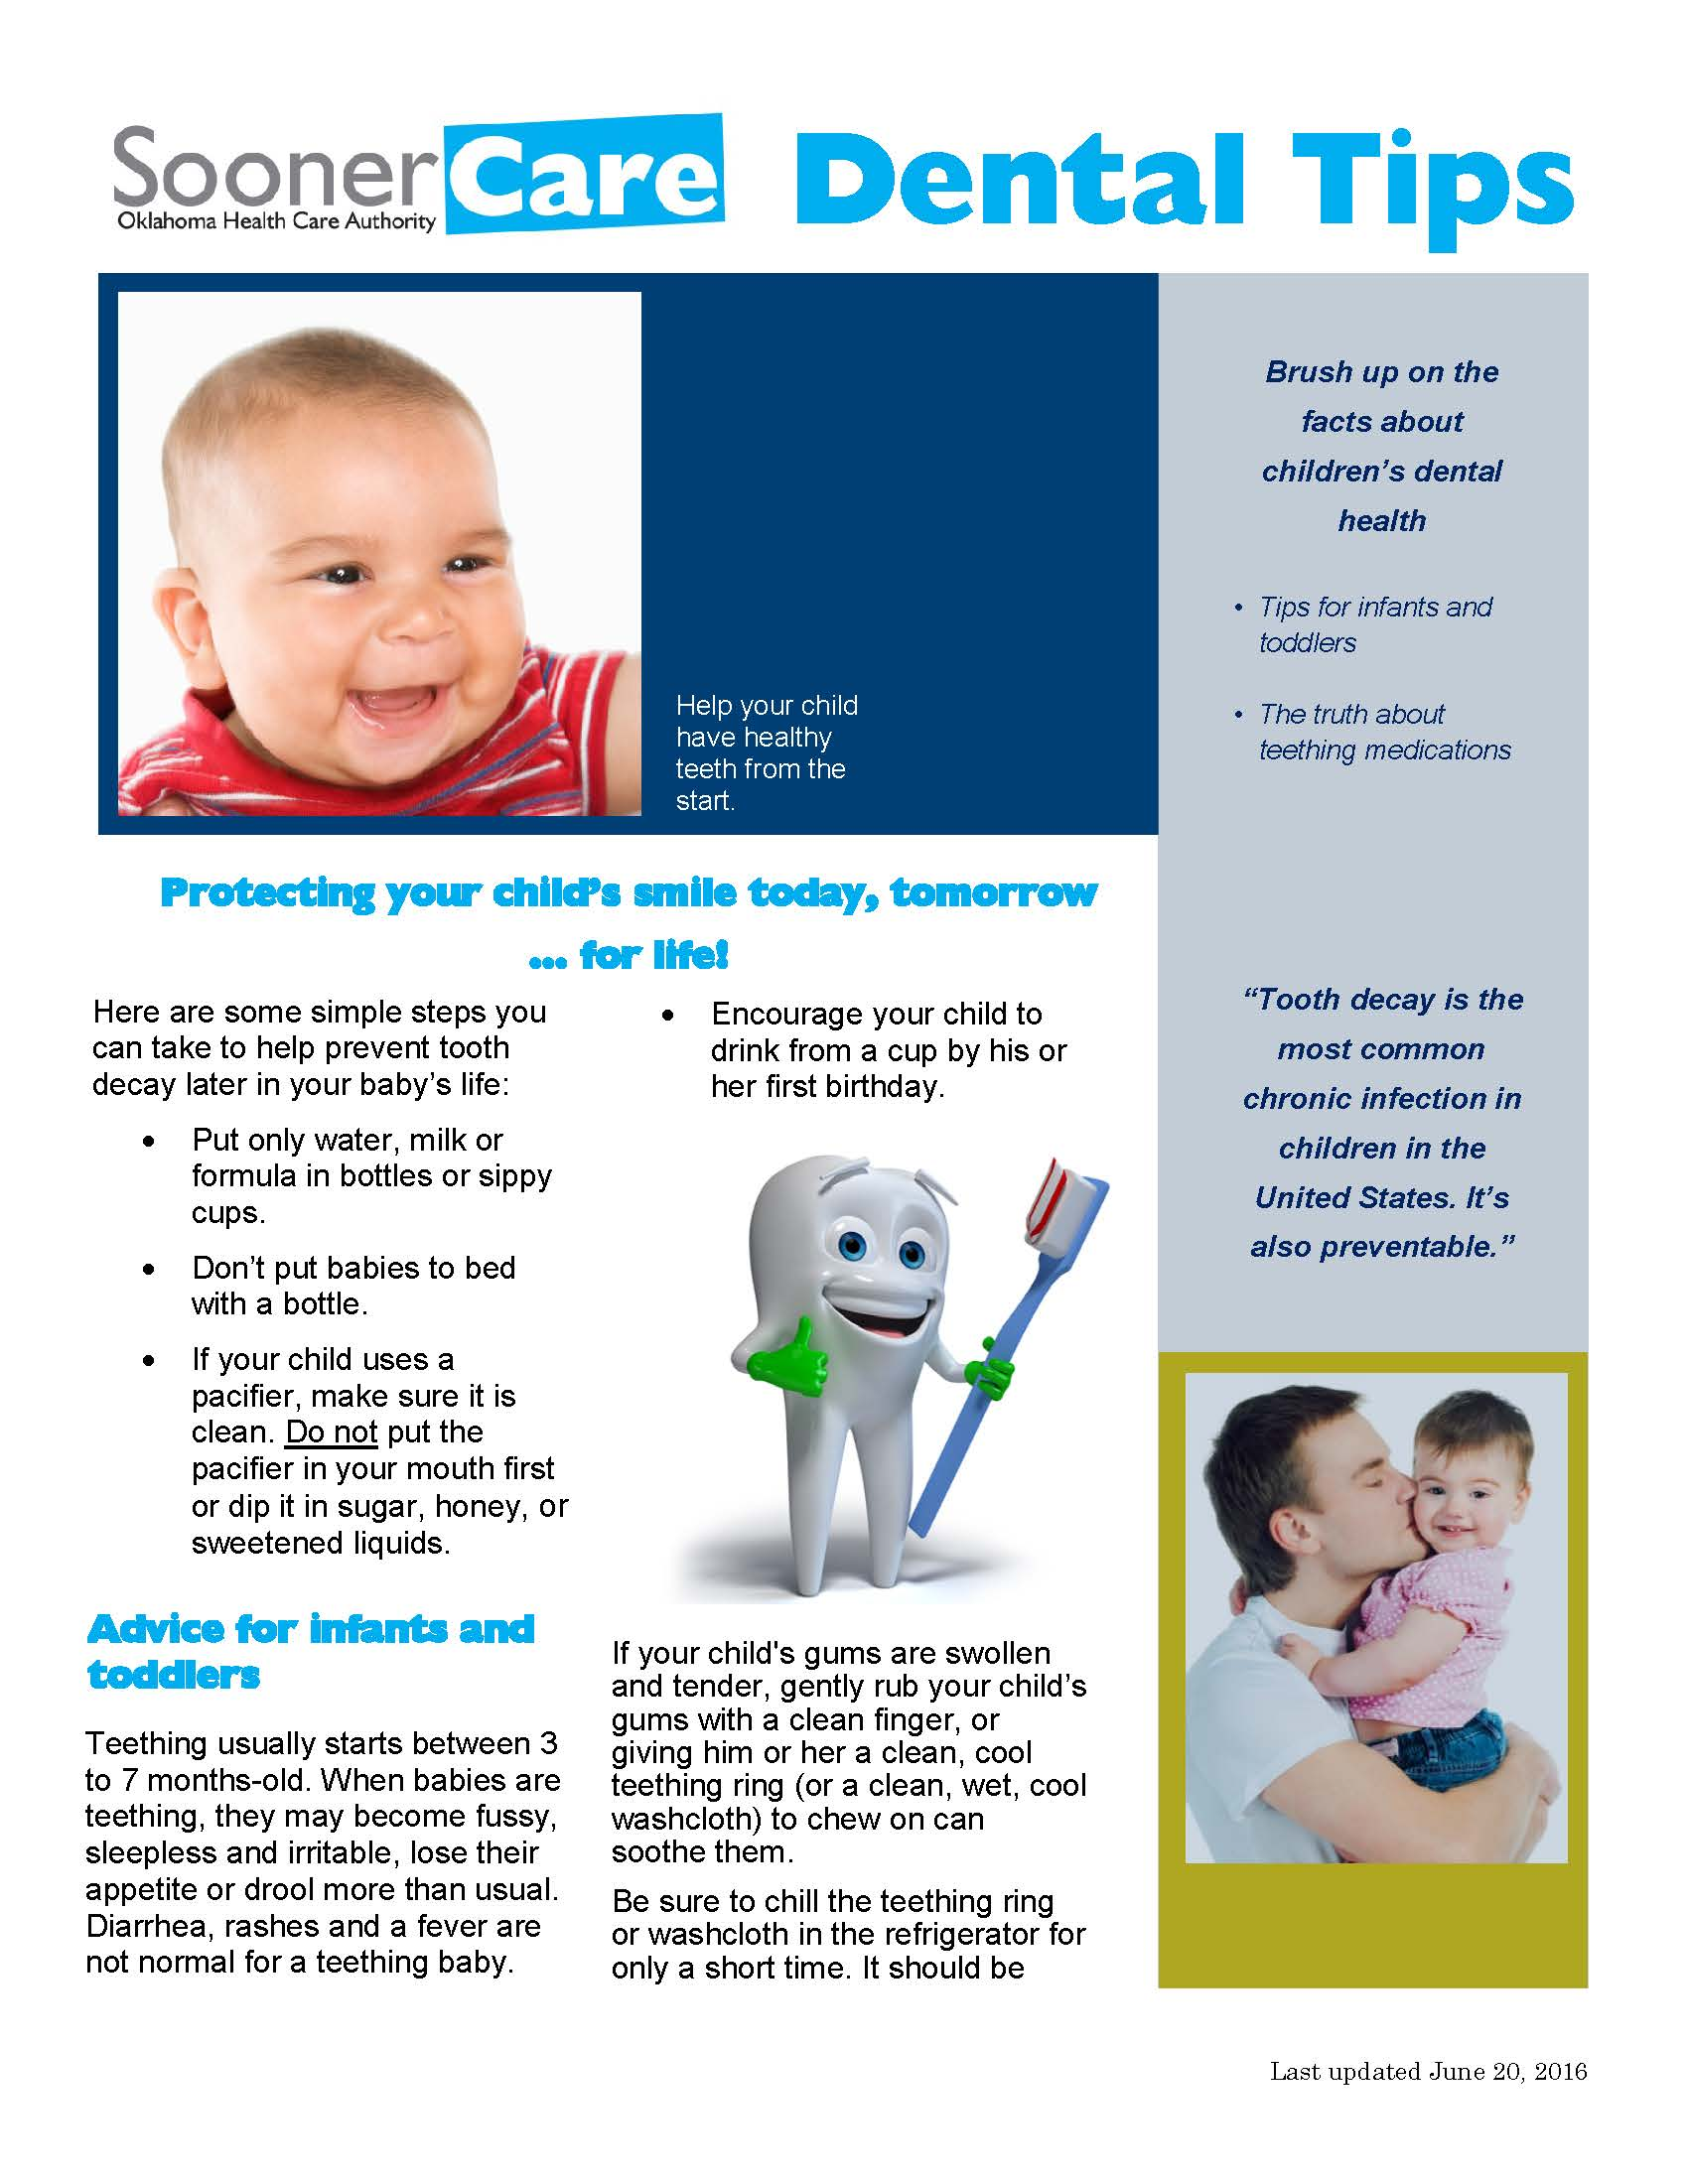 Dental Tips 1_Infants and Toddlers_20June16_Page_1